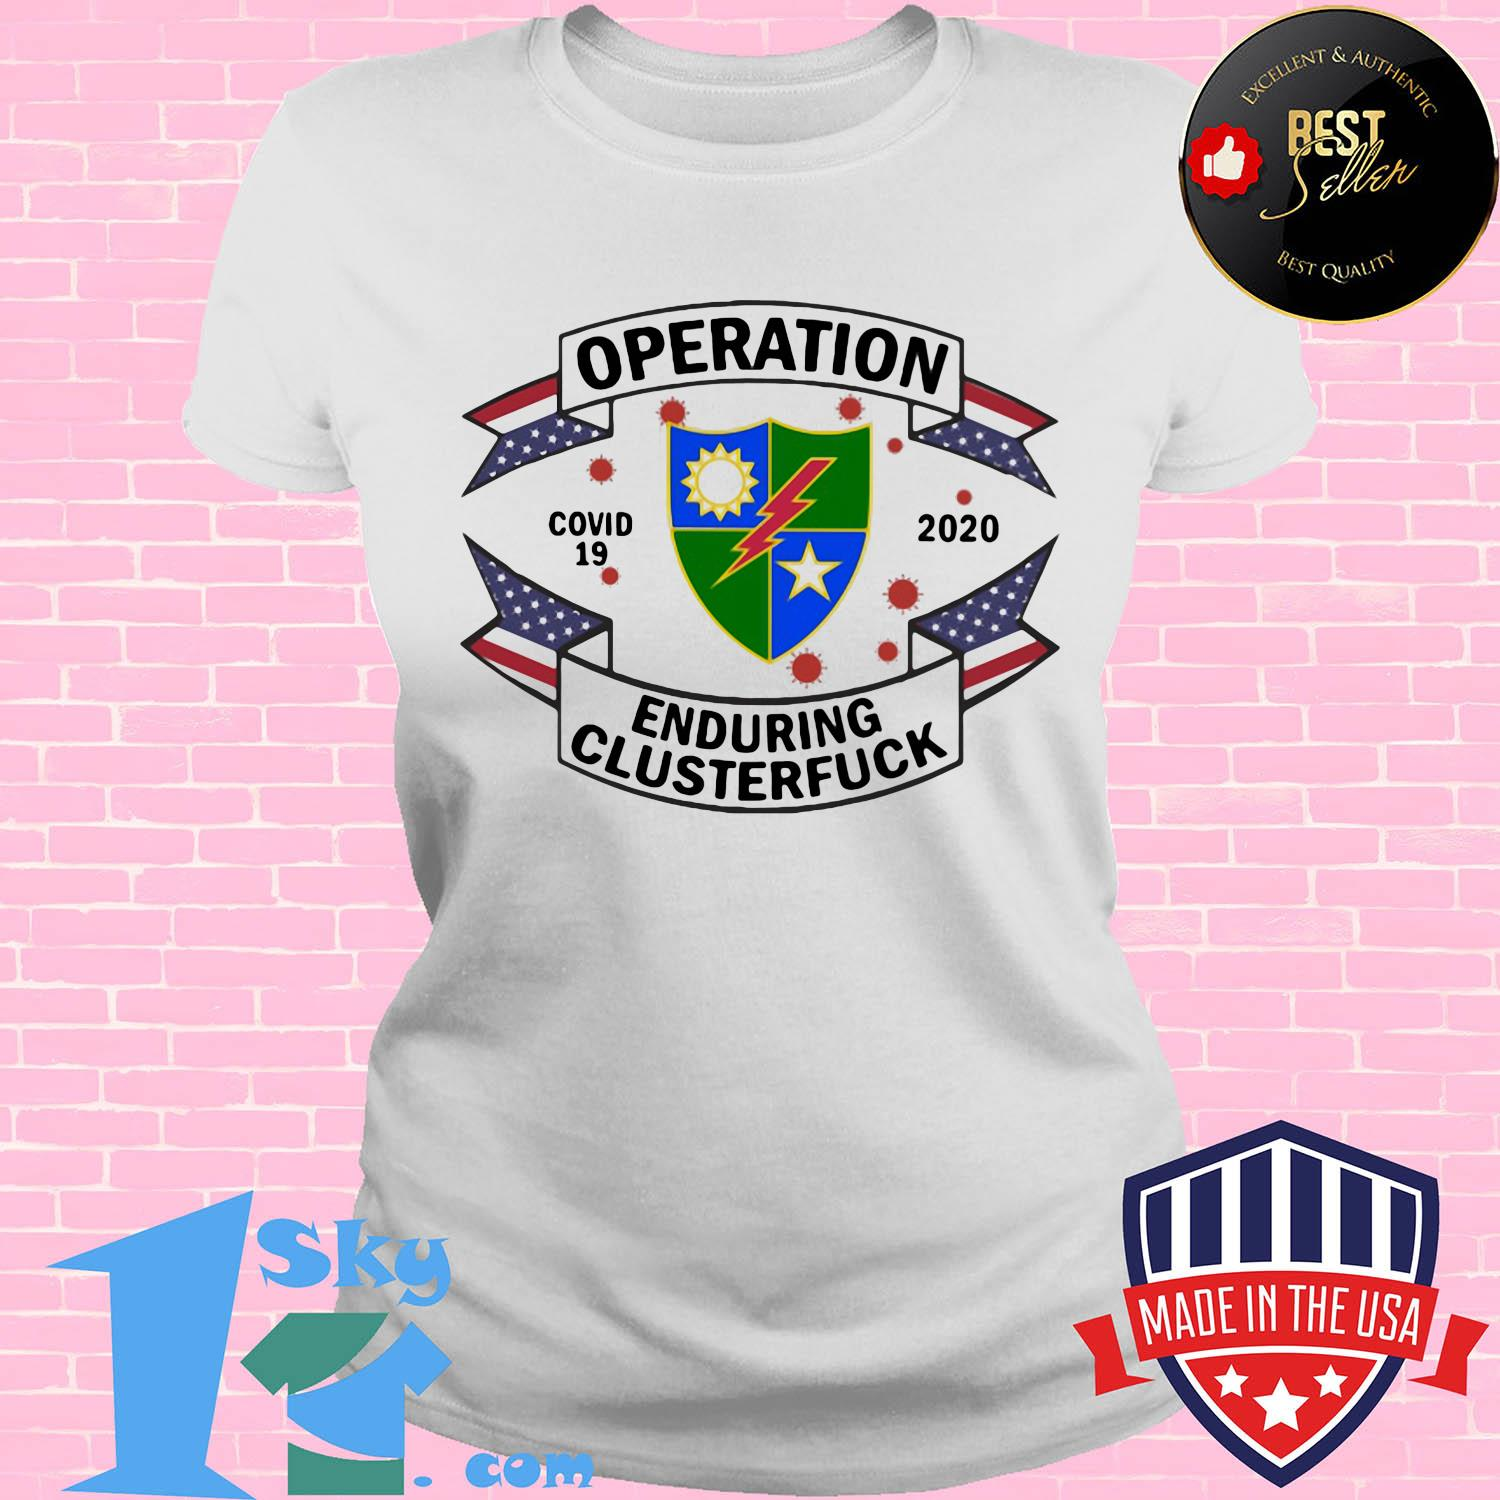 75th ranger regiment operation covid-19 2020 enduring clusterfuck shirt